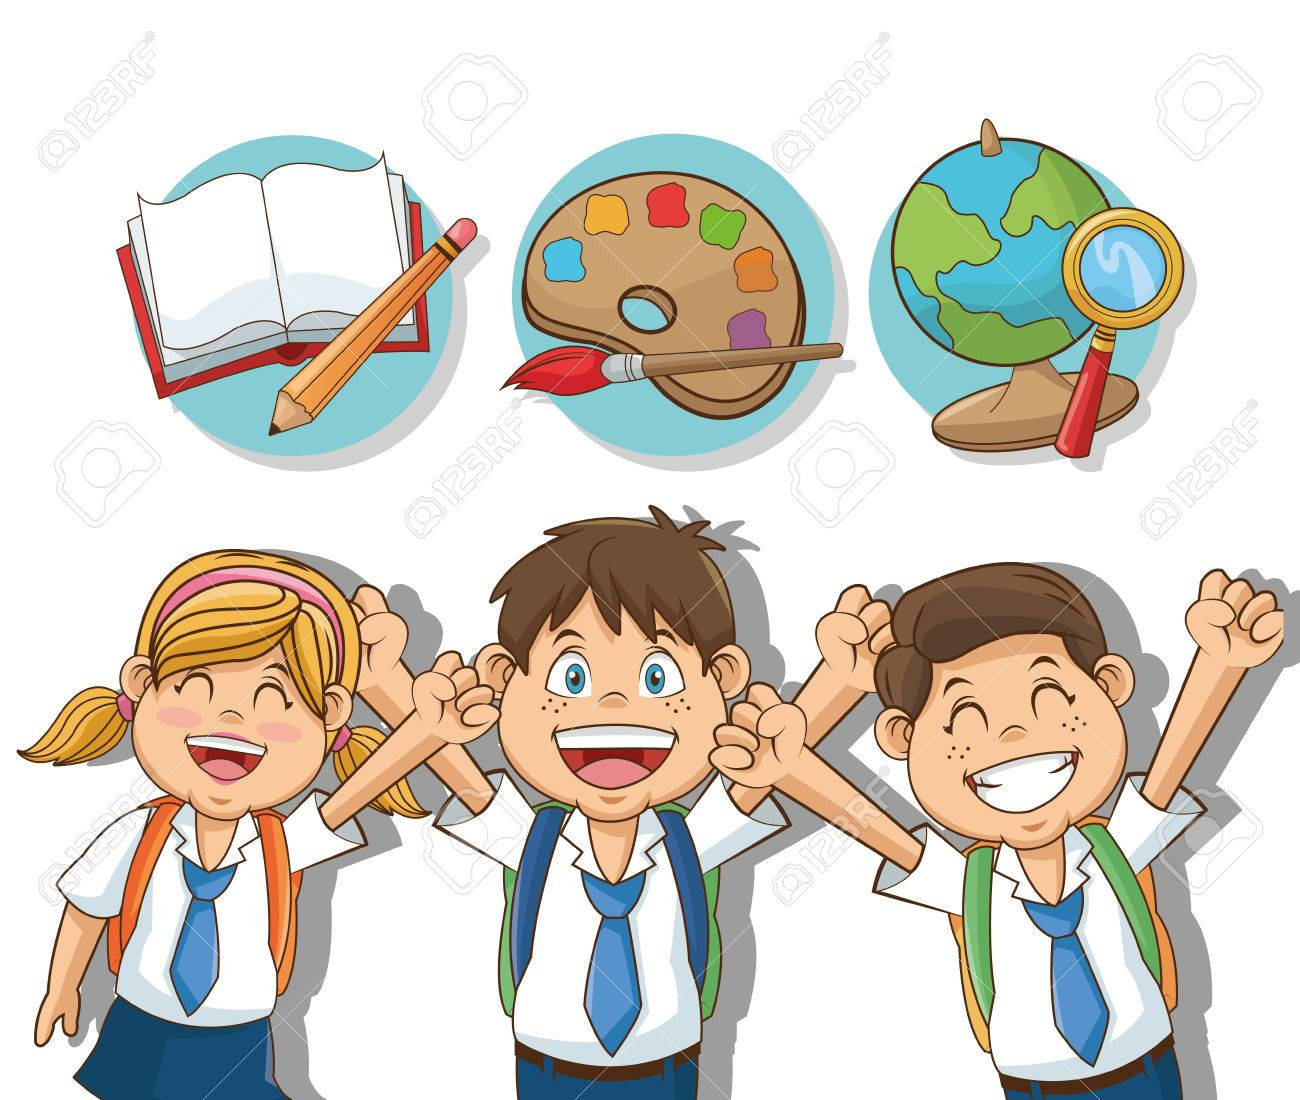 Boys And Girl Cartoons Students Back To School Education And Royalty Free Cliparts Vectors And Stock Illustration Image 63262013